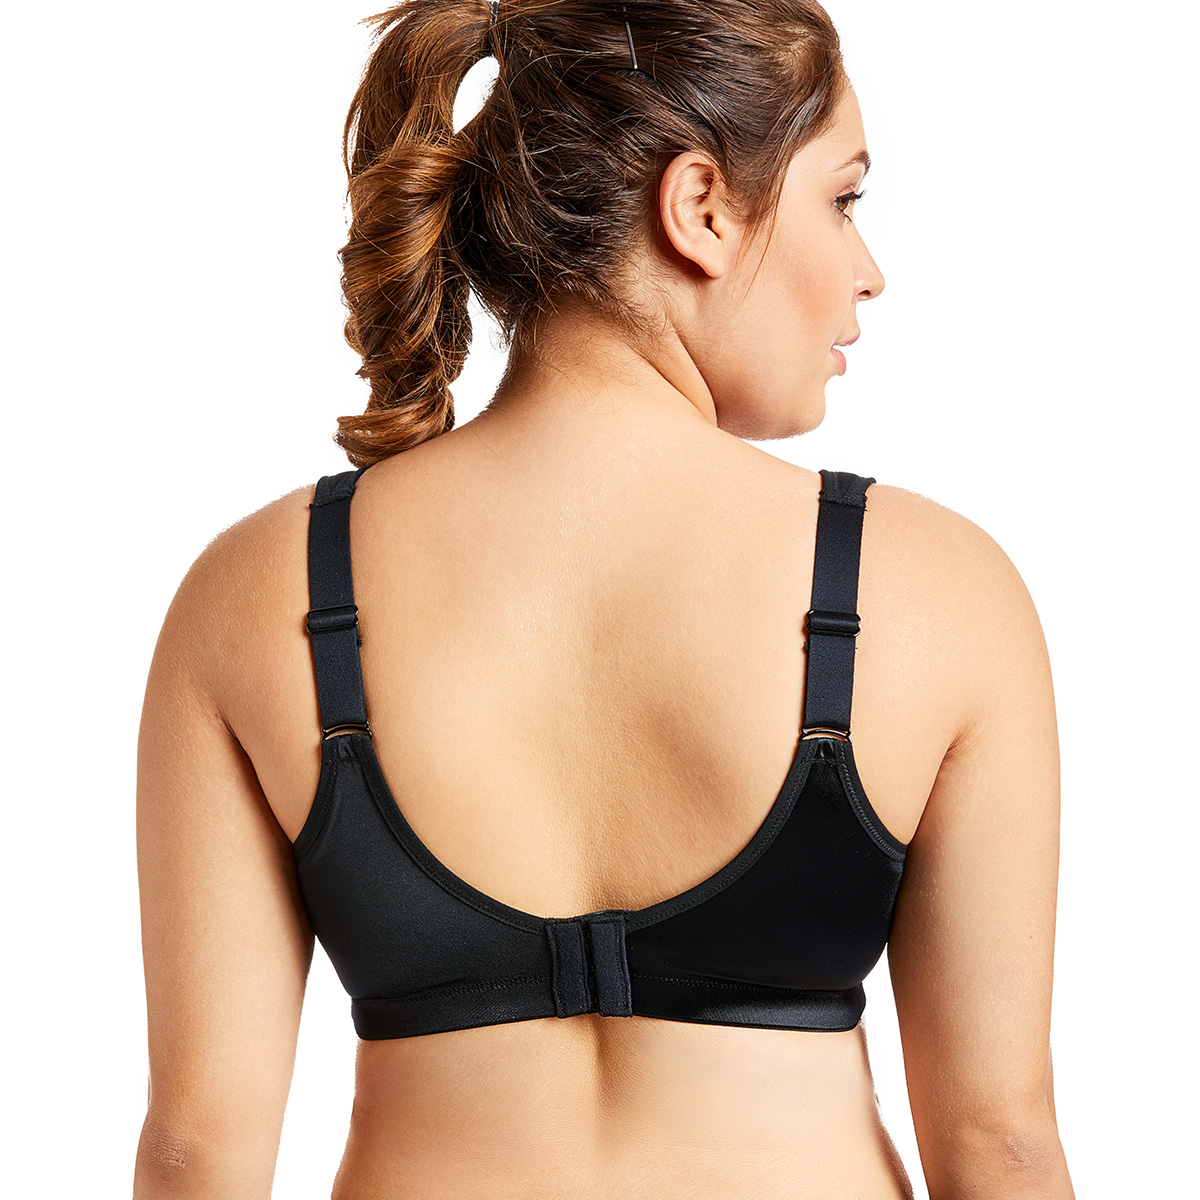 Image 2 - Women's Plus Size High Impact No Bounce Full Coverage Wire Free Exercise Bra-in Bras from Underwear & Sleepwears